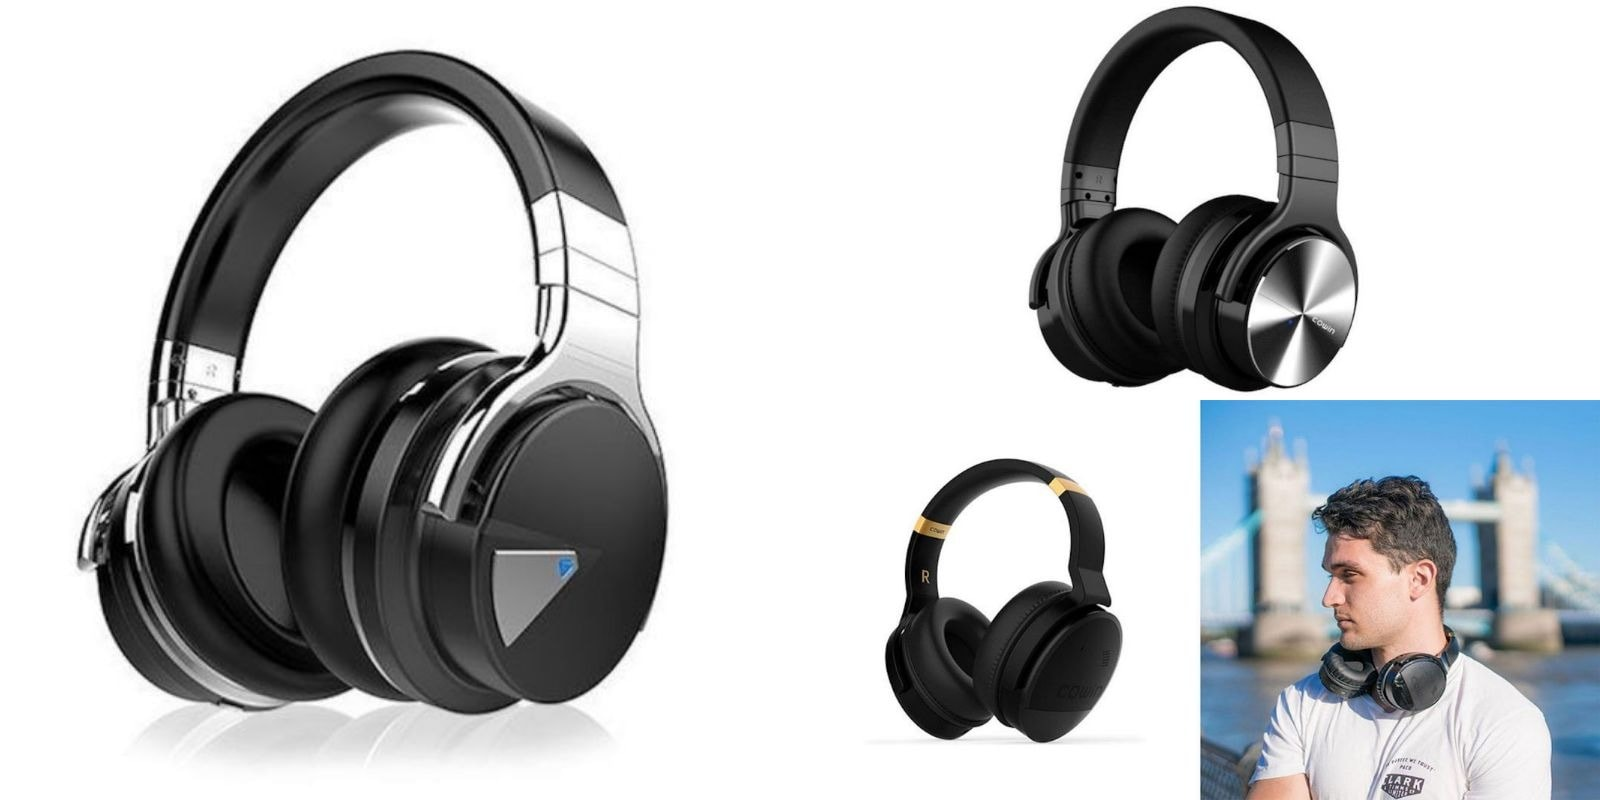 We've rounded up three of the best deals on noise cancelling headphones from Cowin.